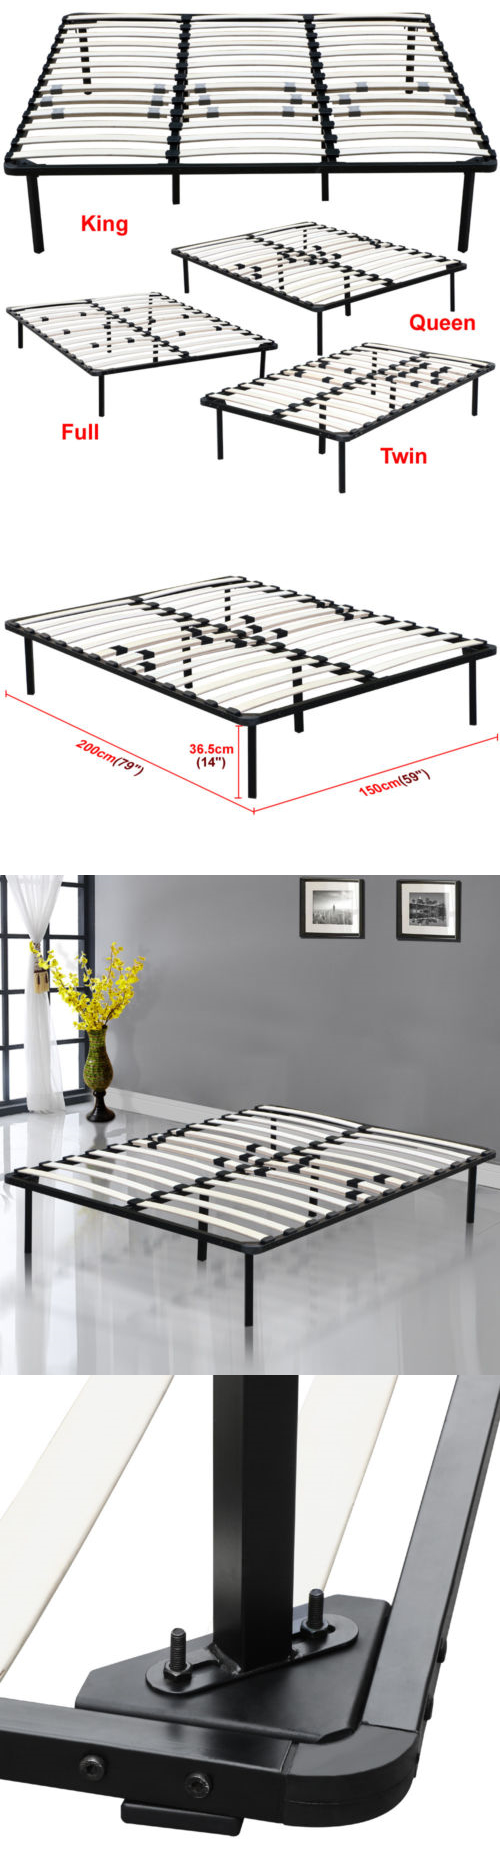 Furniture full king queen twin size wood slats metal bed frame